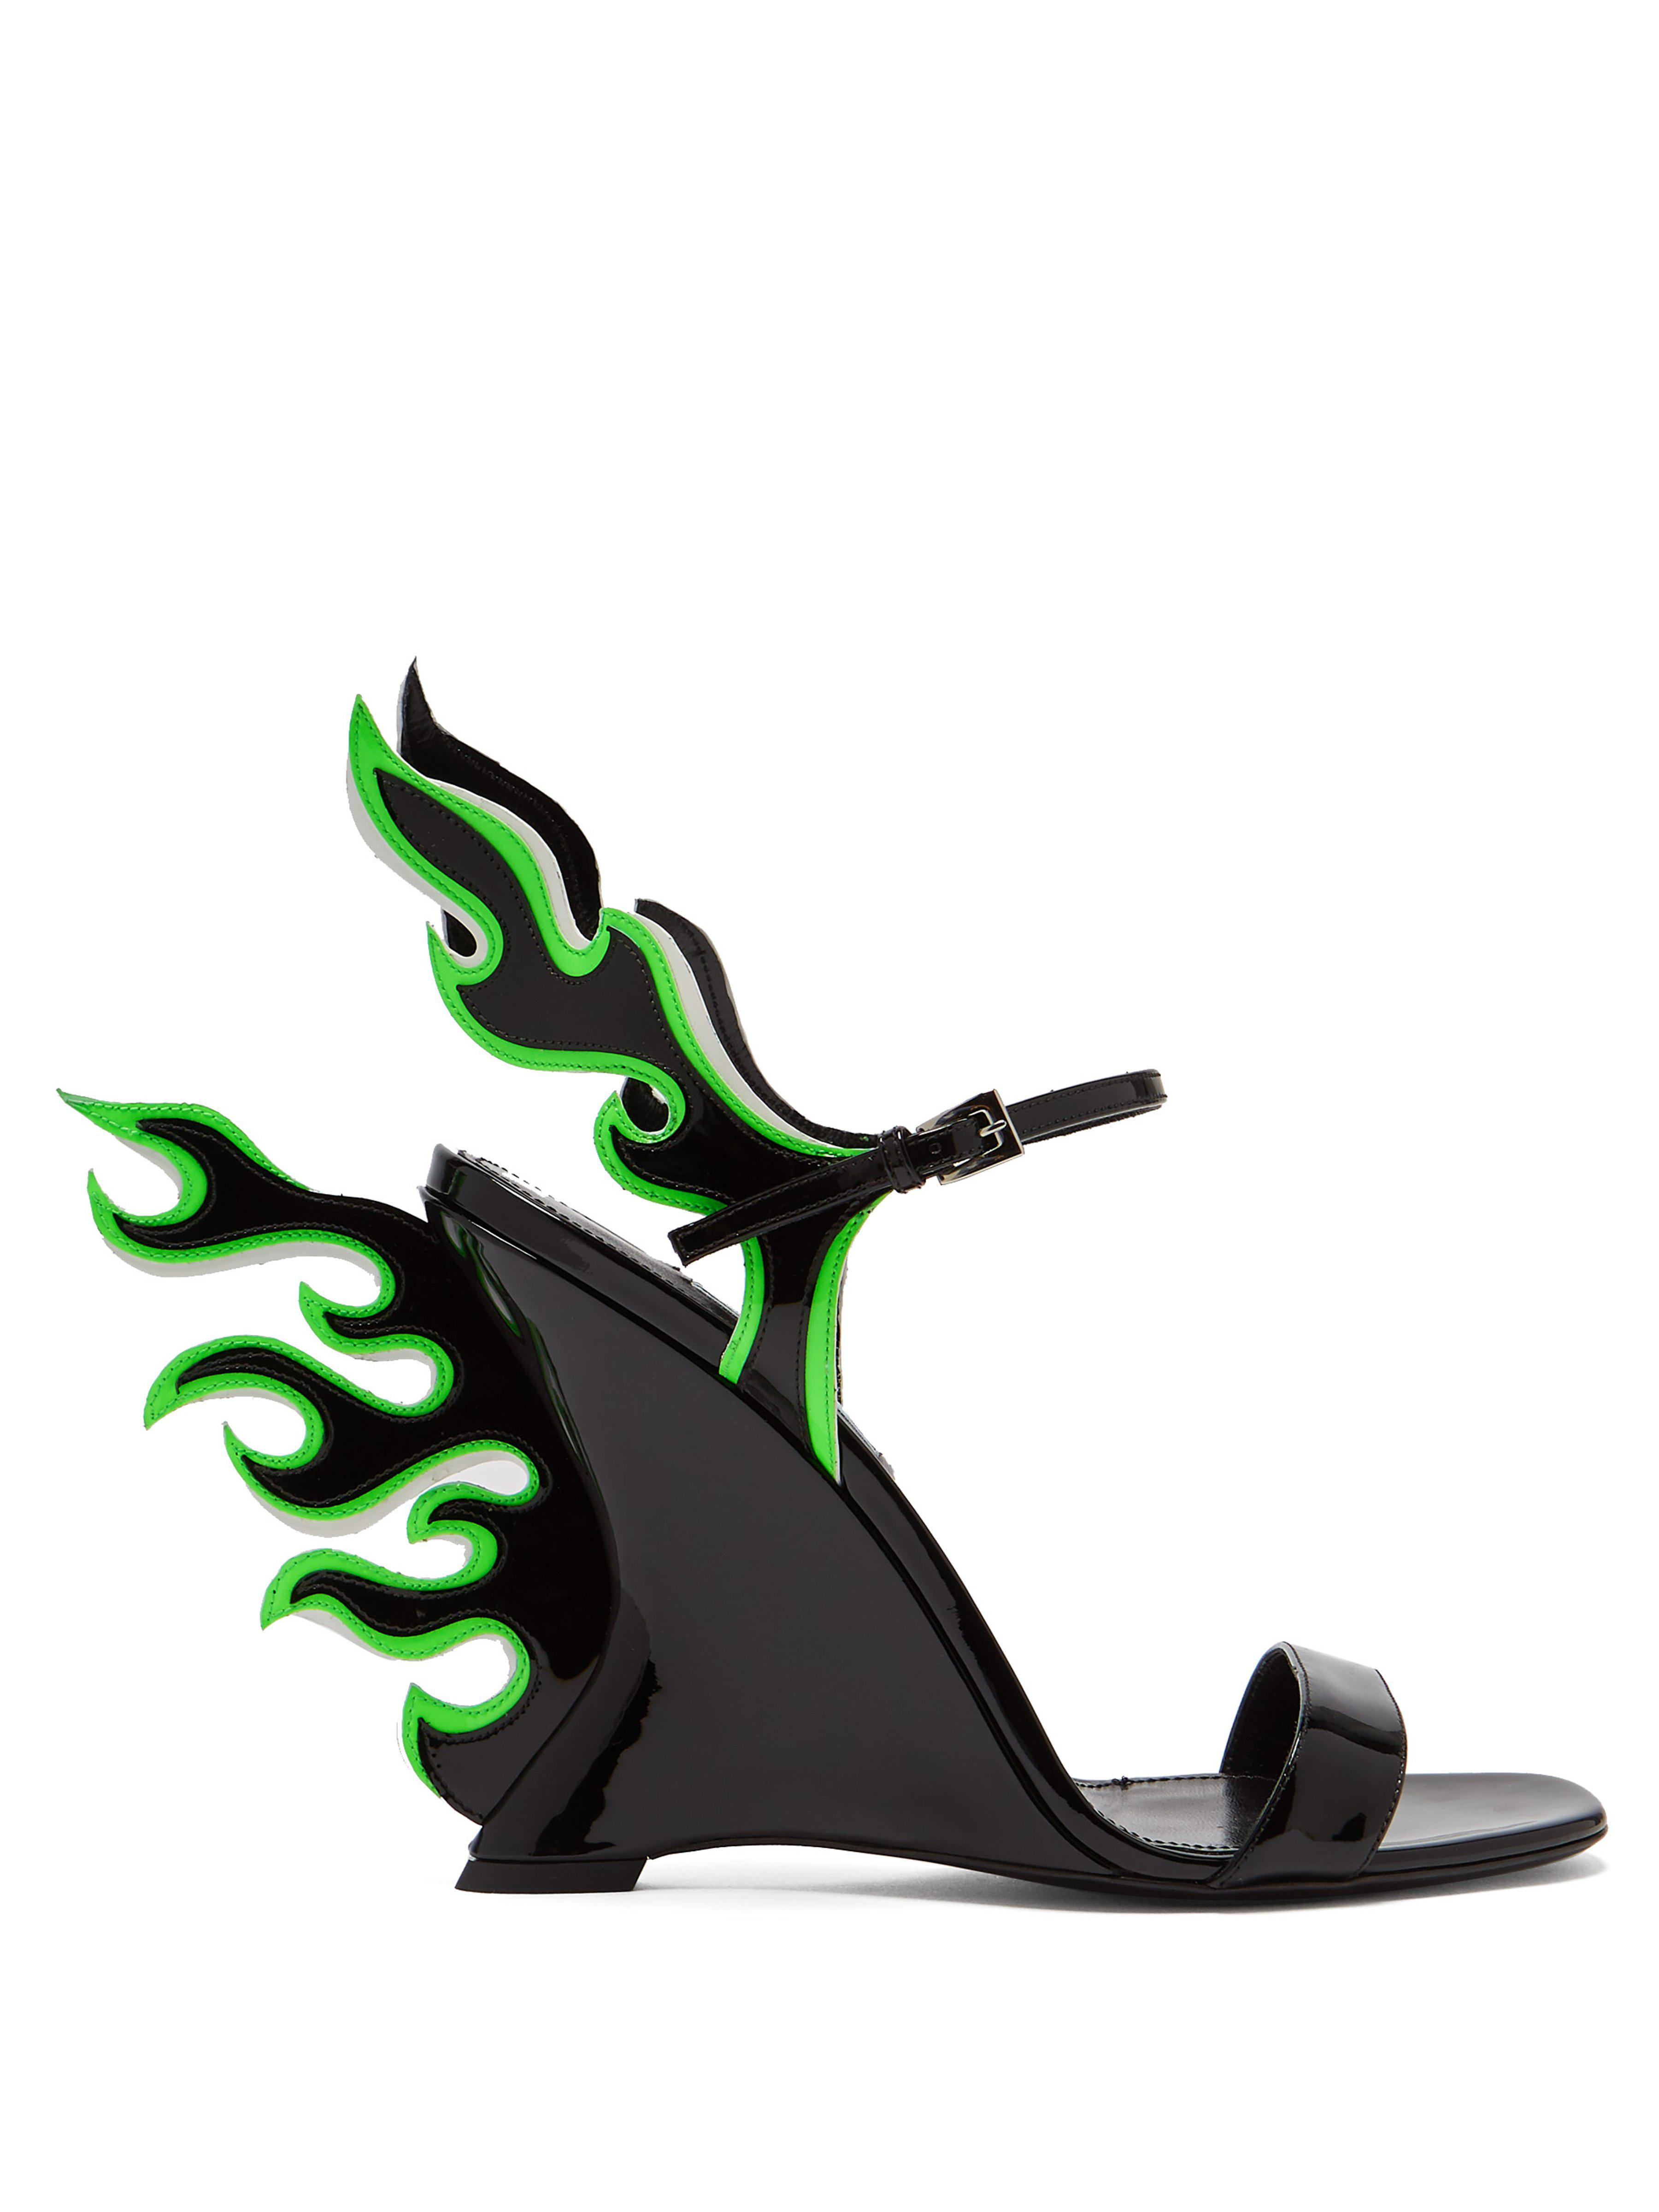 3ae09d38d707 Prada Flame Patent-leather Sandals in Green - Lyst